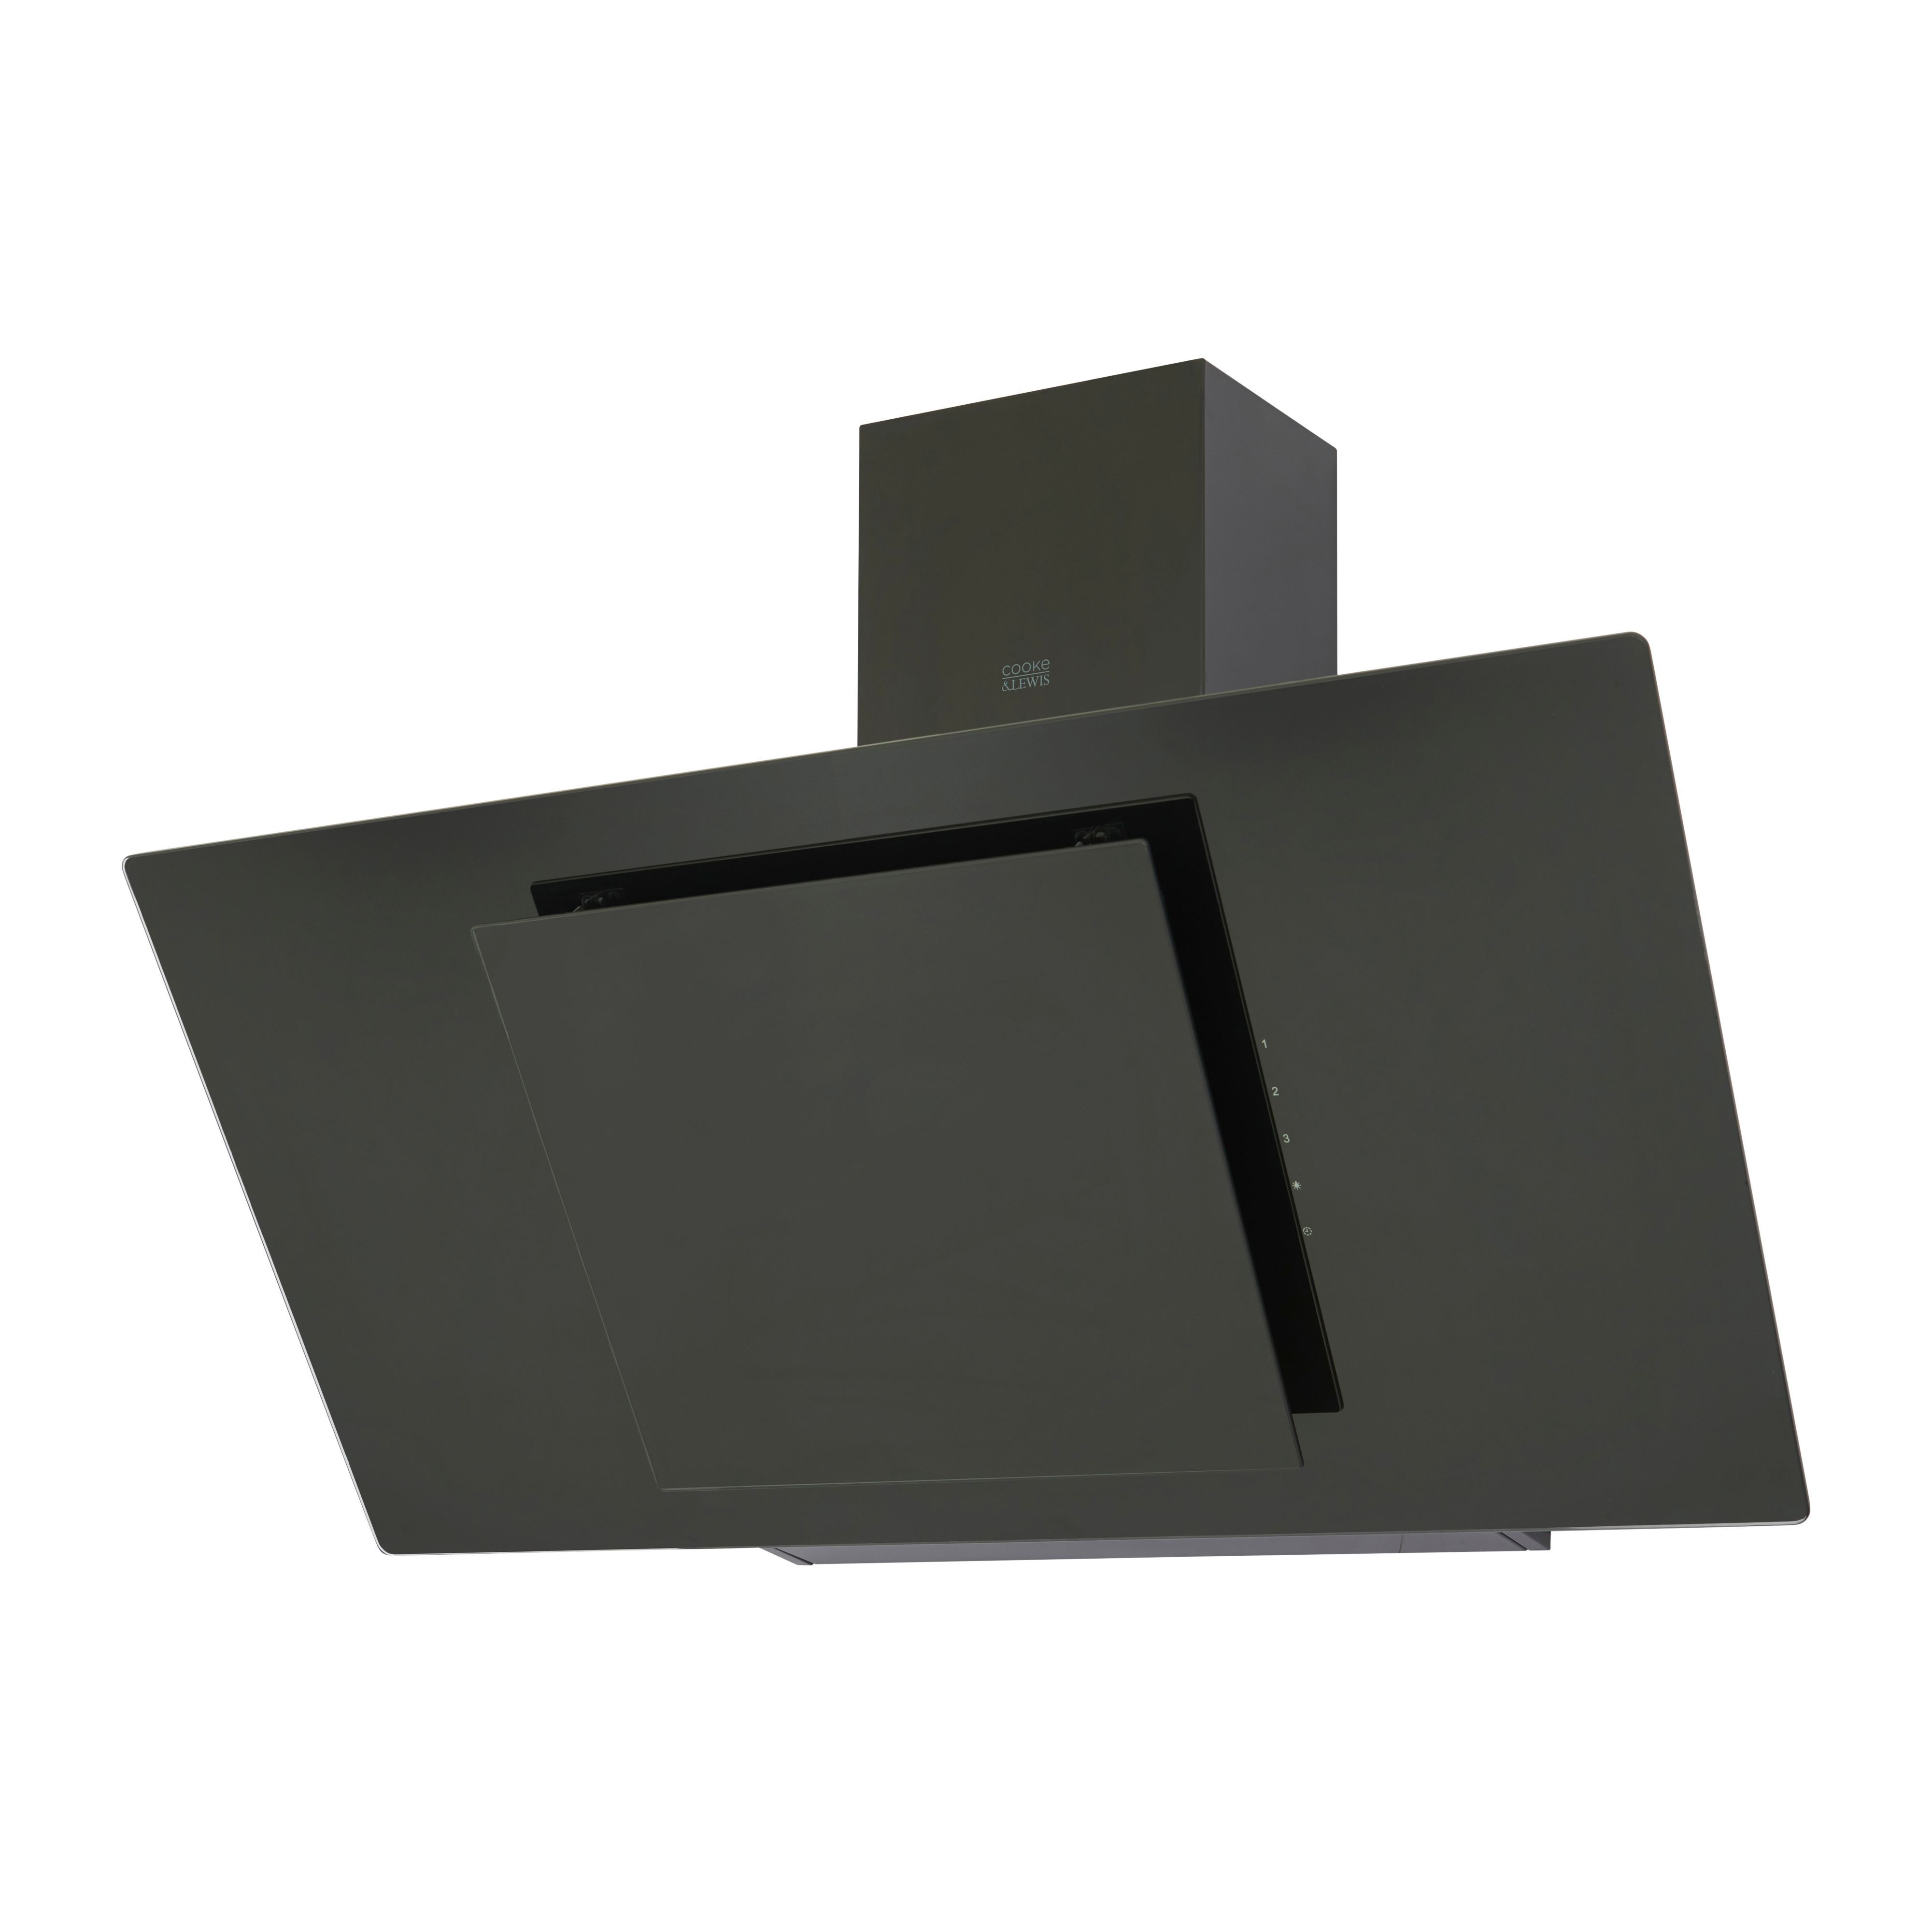 Cooke & Lewis Clagb90 Black Glass Angled Cooker Hood, (w) 900mm